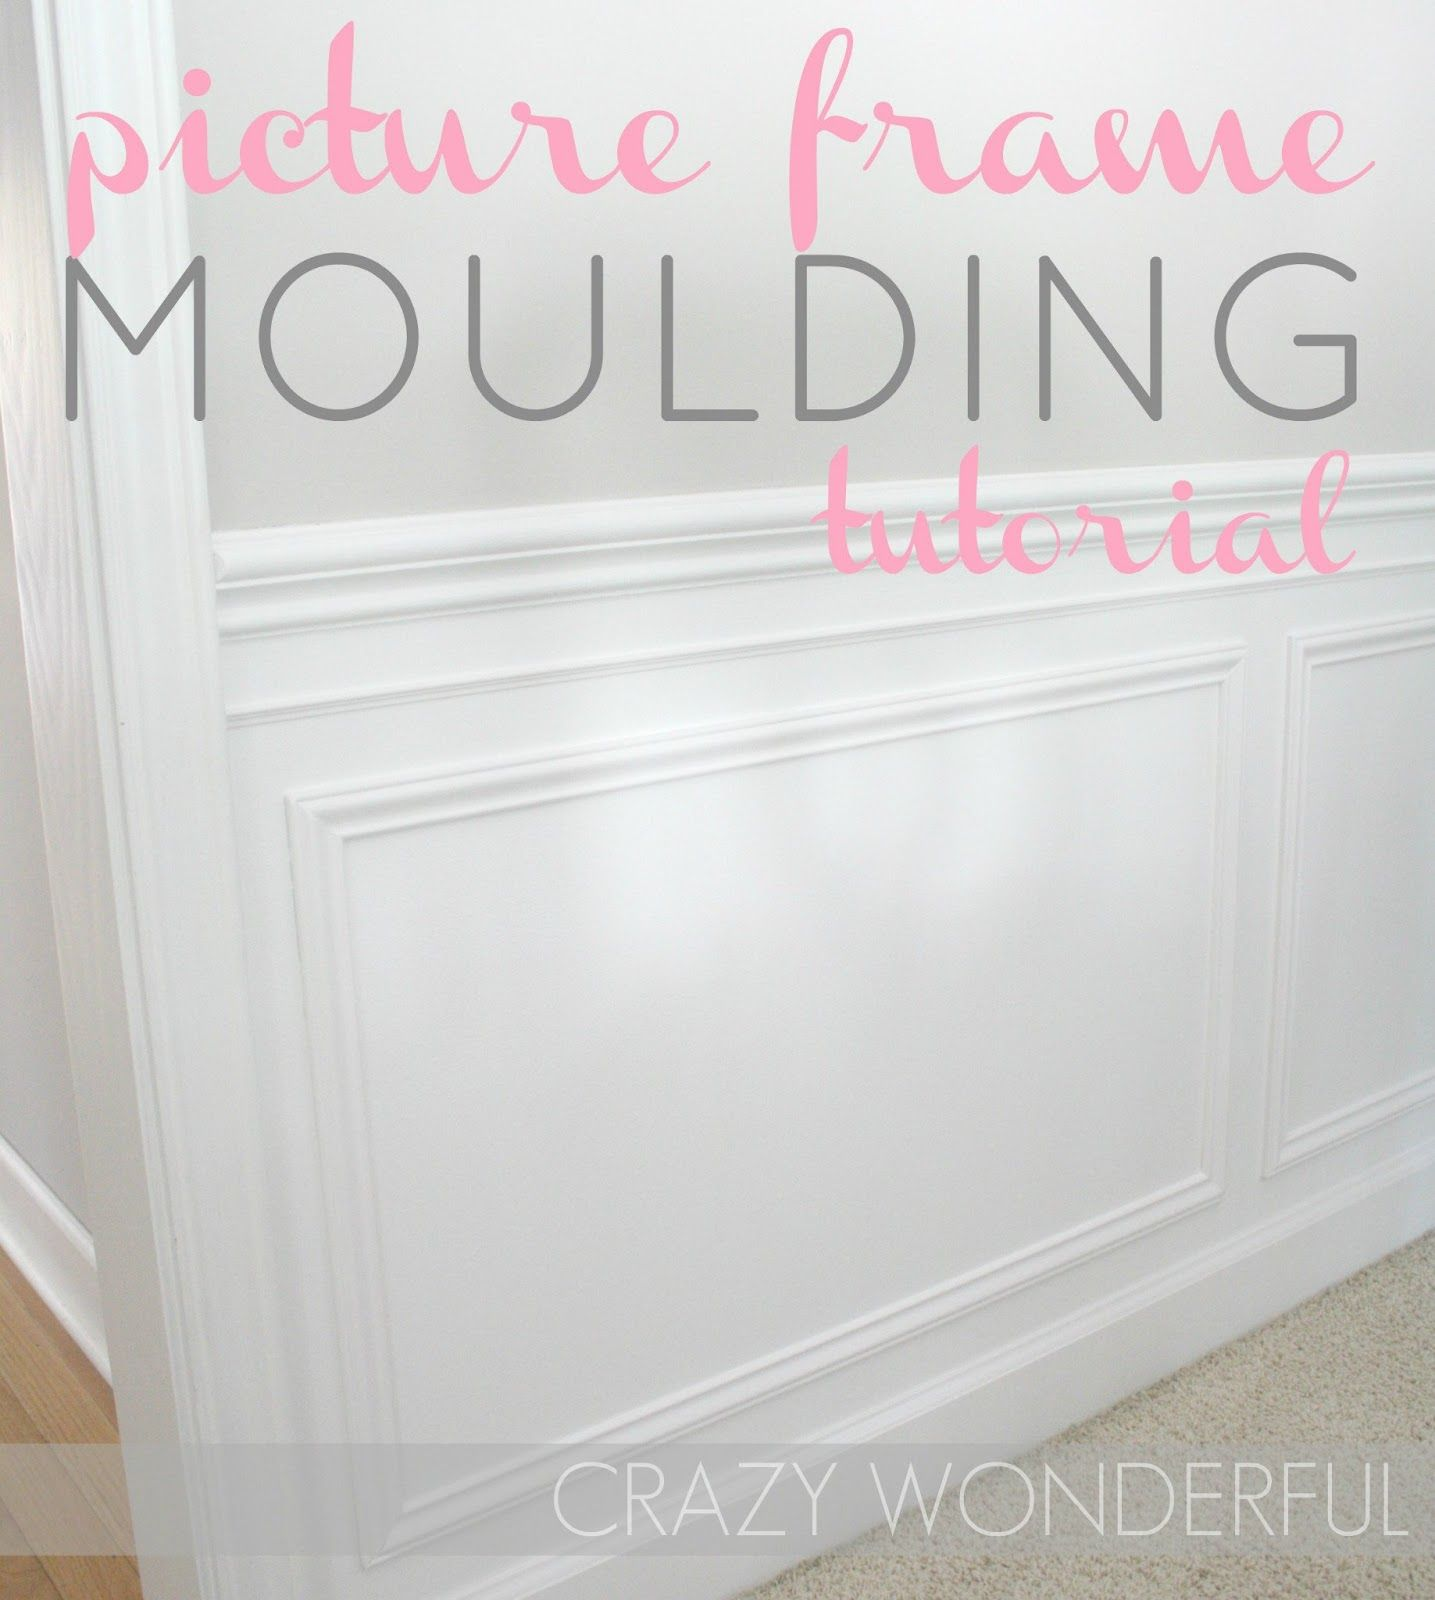 Molding my thoughts picture frame molding southern hospitality molding my thoughts picture frame molding southern hospitality and hospitality jeuxipadfo Images